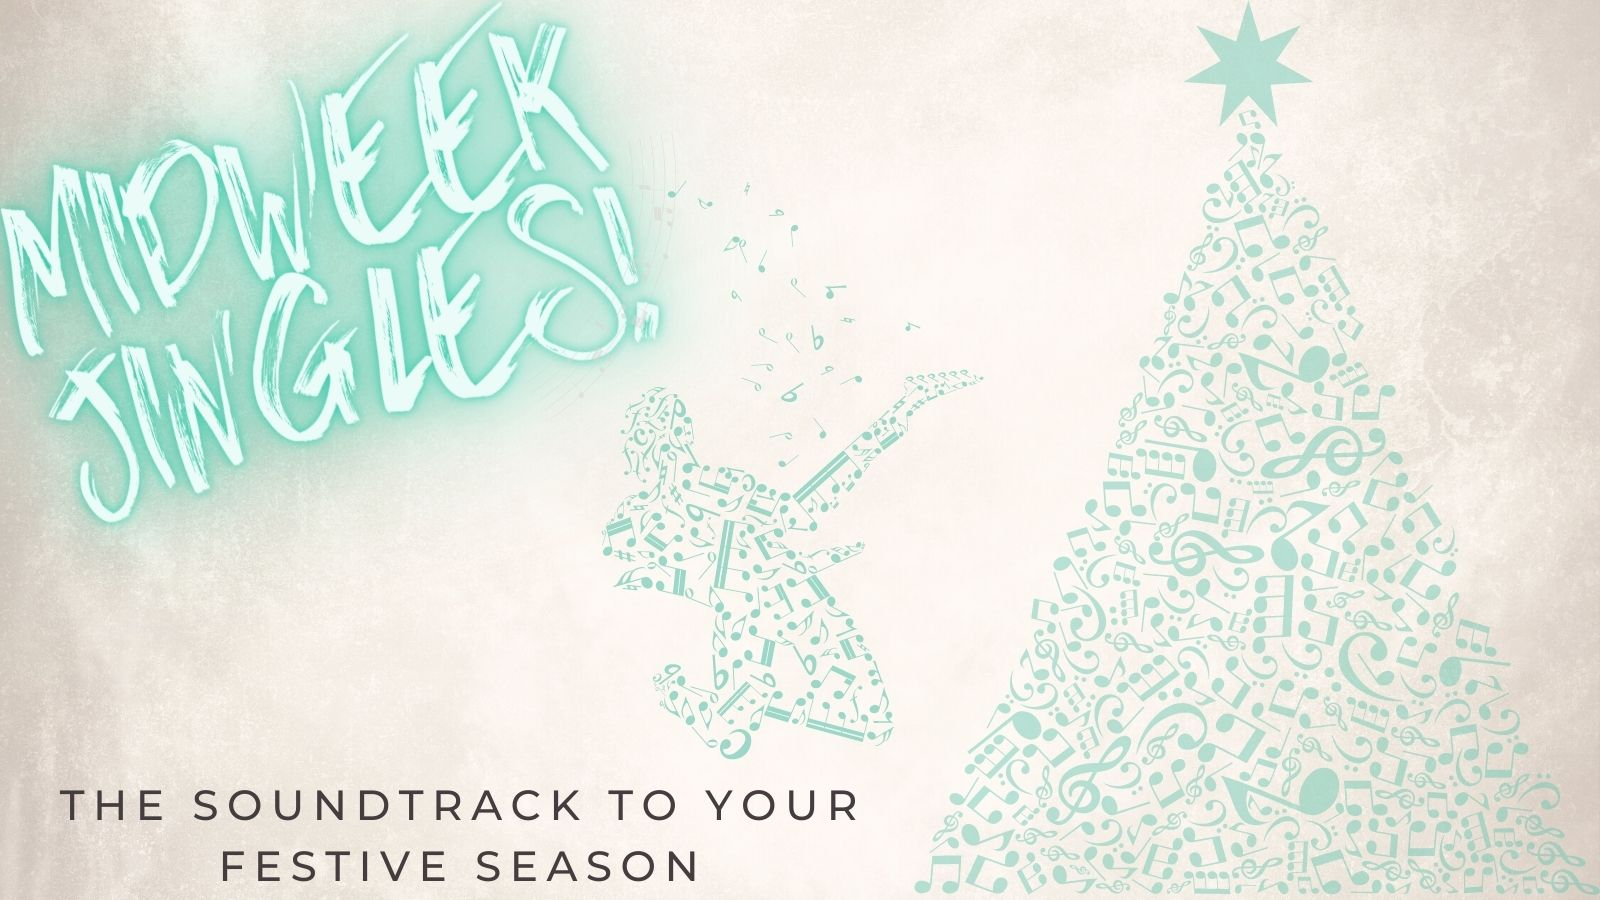 MidWeek Jingles Cover Image Christmas Tree & Guitarist Made From Music Notes